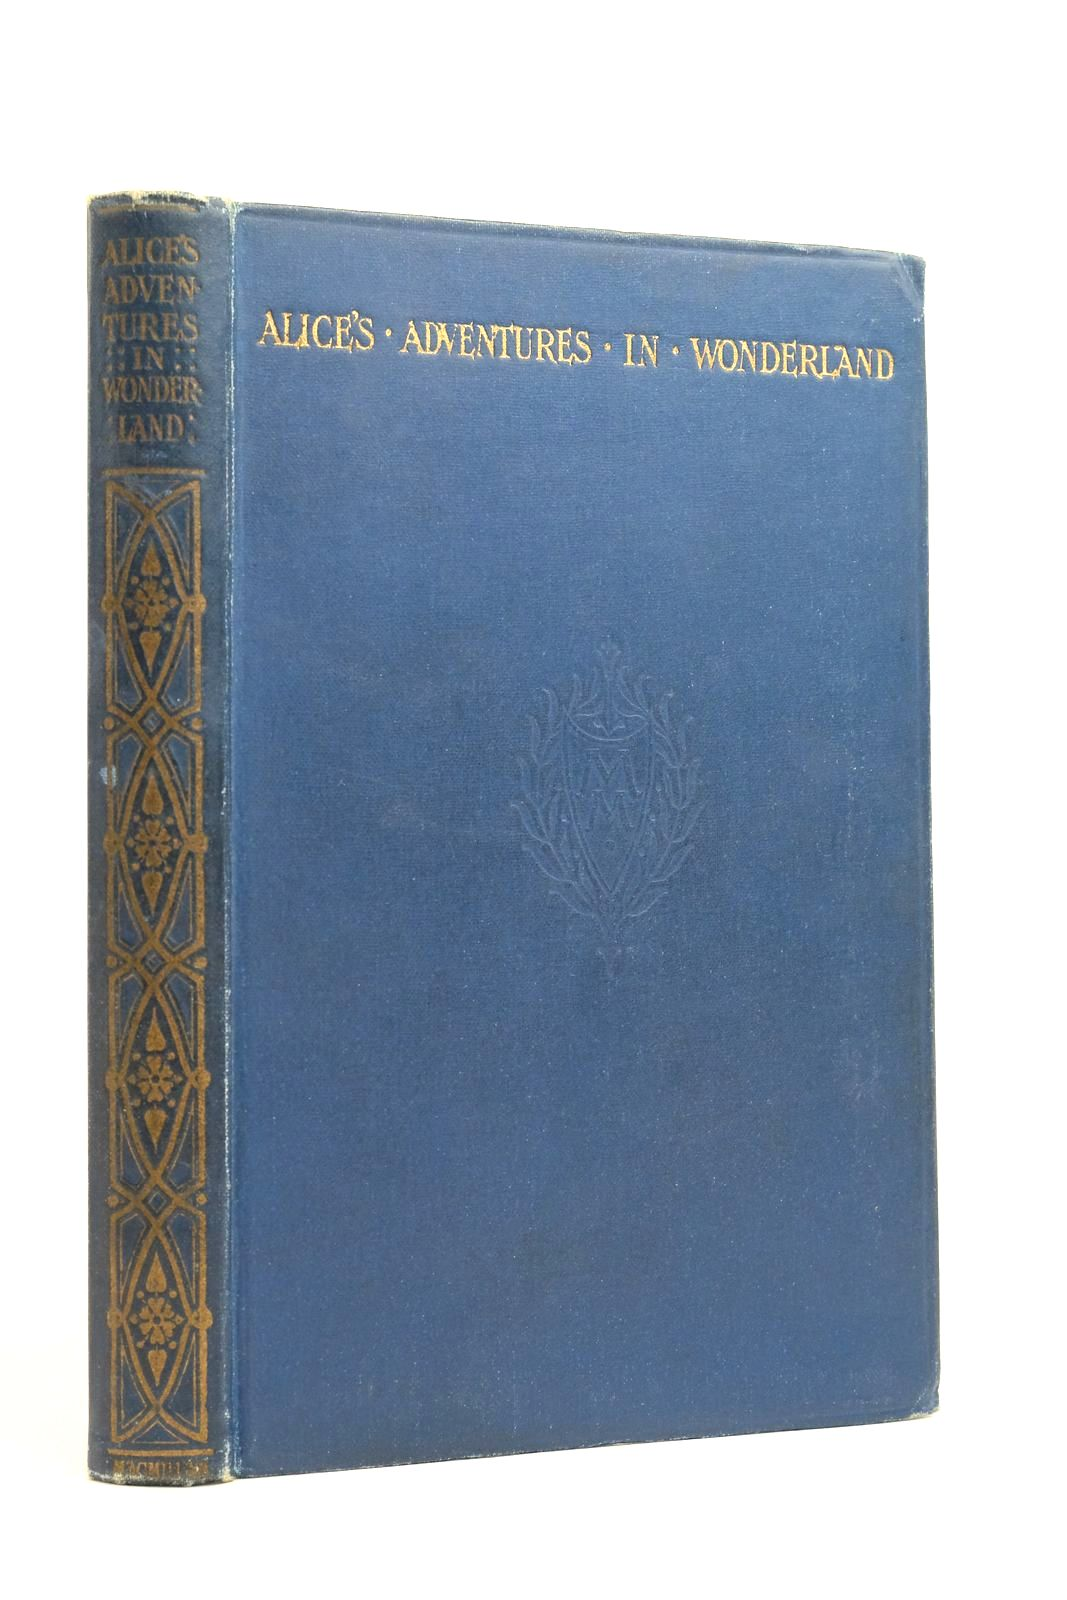 Photo of ALICE'S ADVENTURES IN WONDERLAND written by Carroll, Lewis illustrated by Tenniel, John published by Macmillan & Co. Ltd. (STOCK CODE: 2135151)  for sale by Stella & Rose's Books